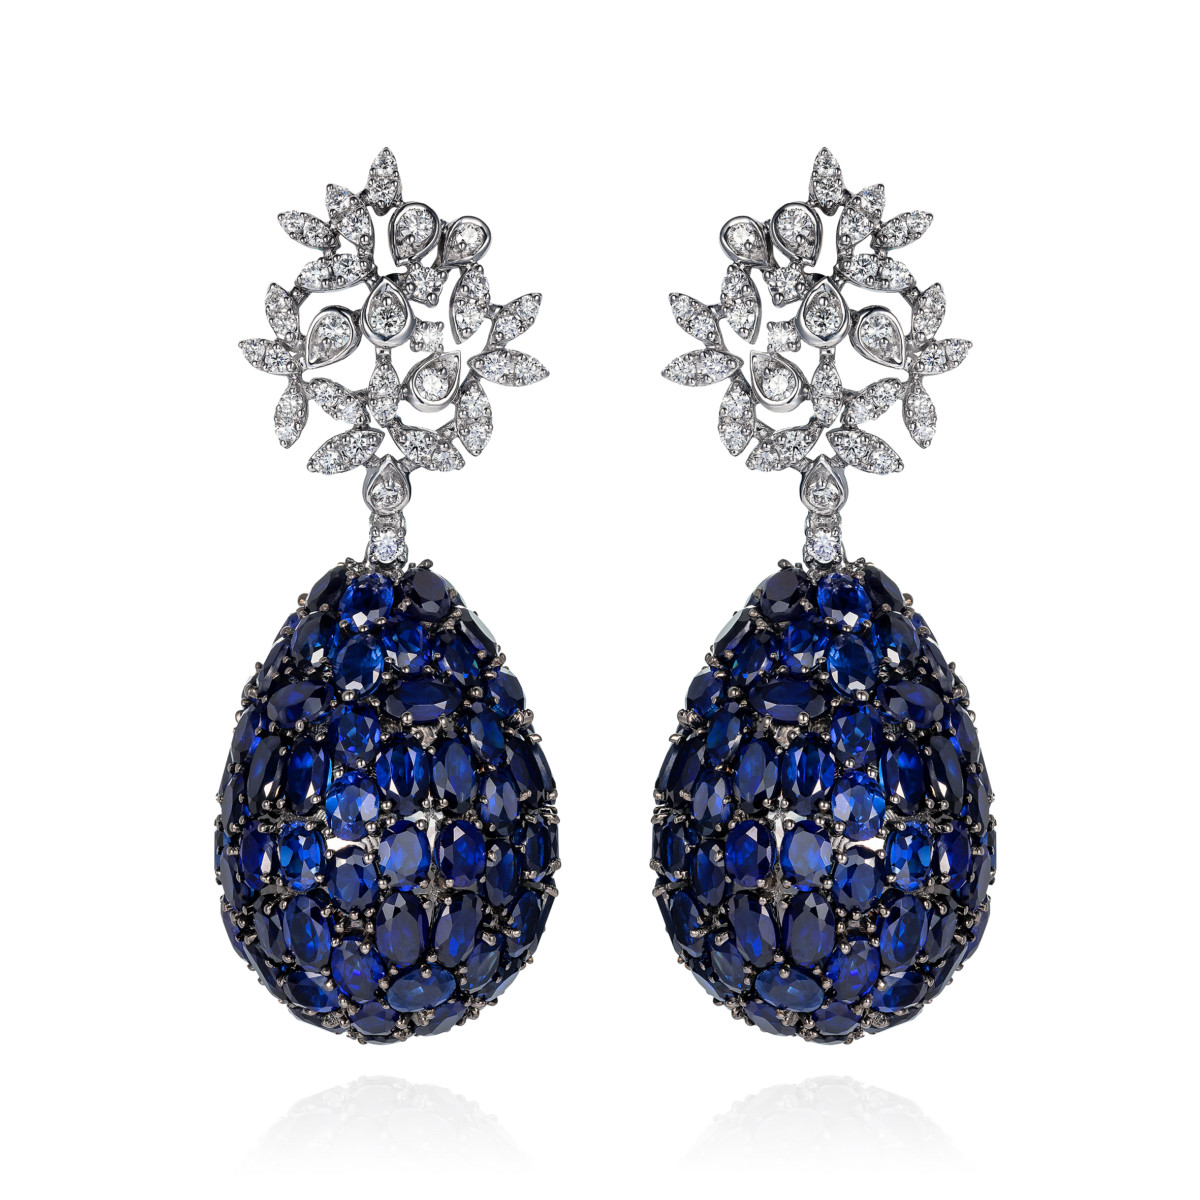 Satta-Matturi-Earrings-2